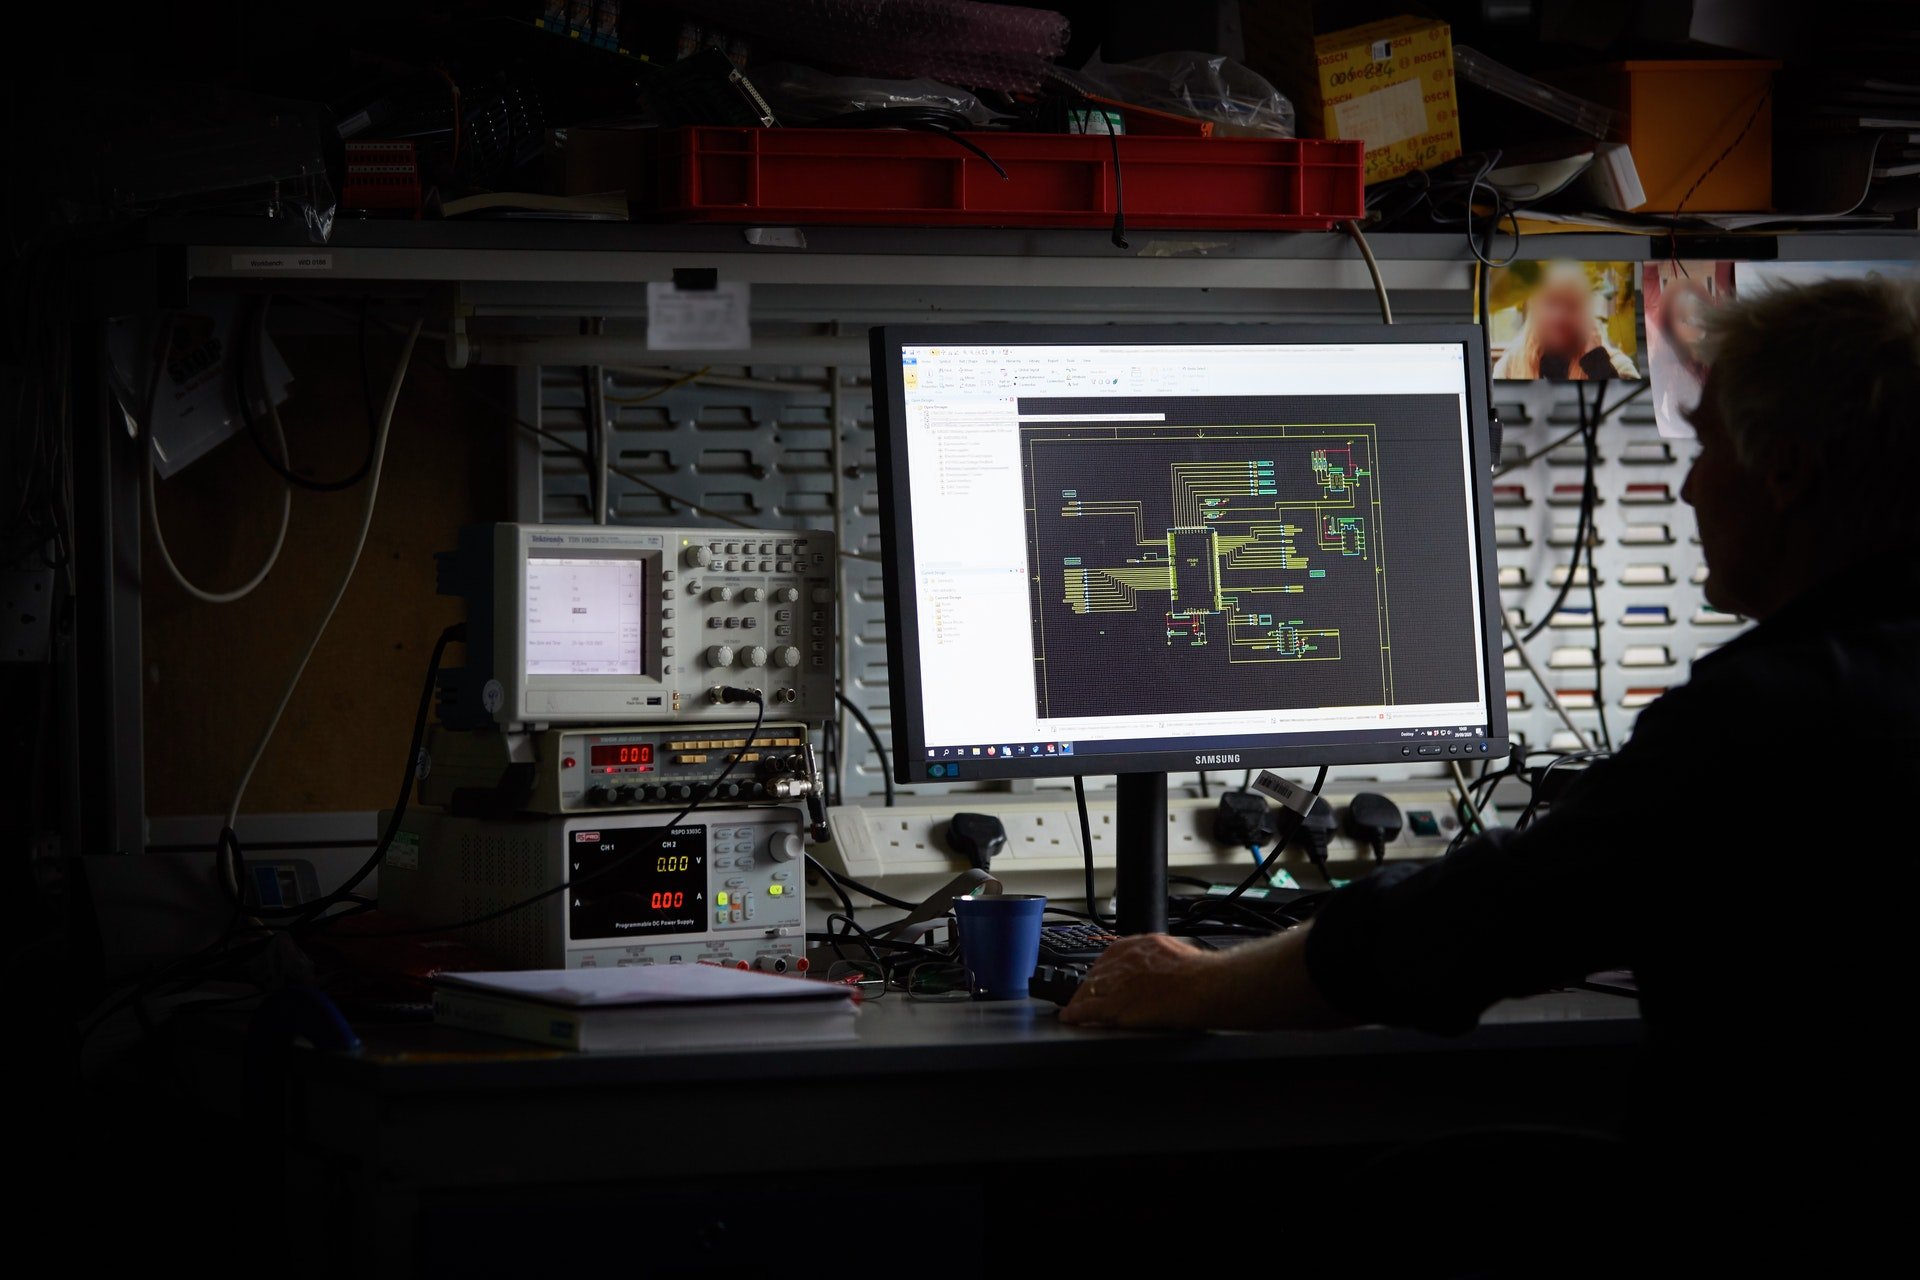 Cambustion engineer working on CAD PCB design